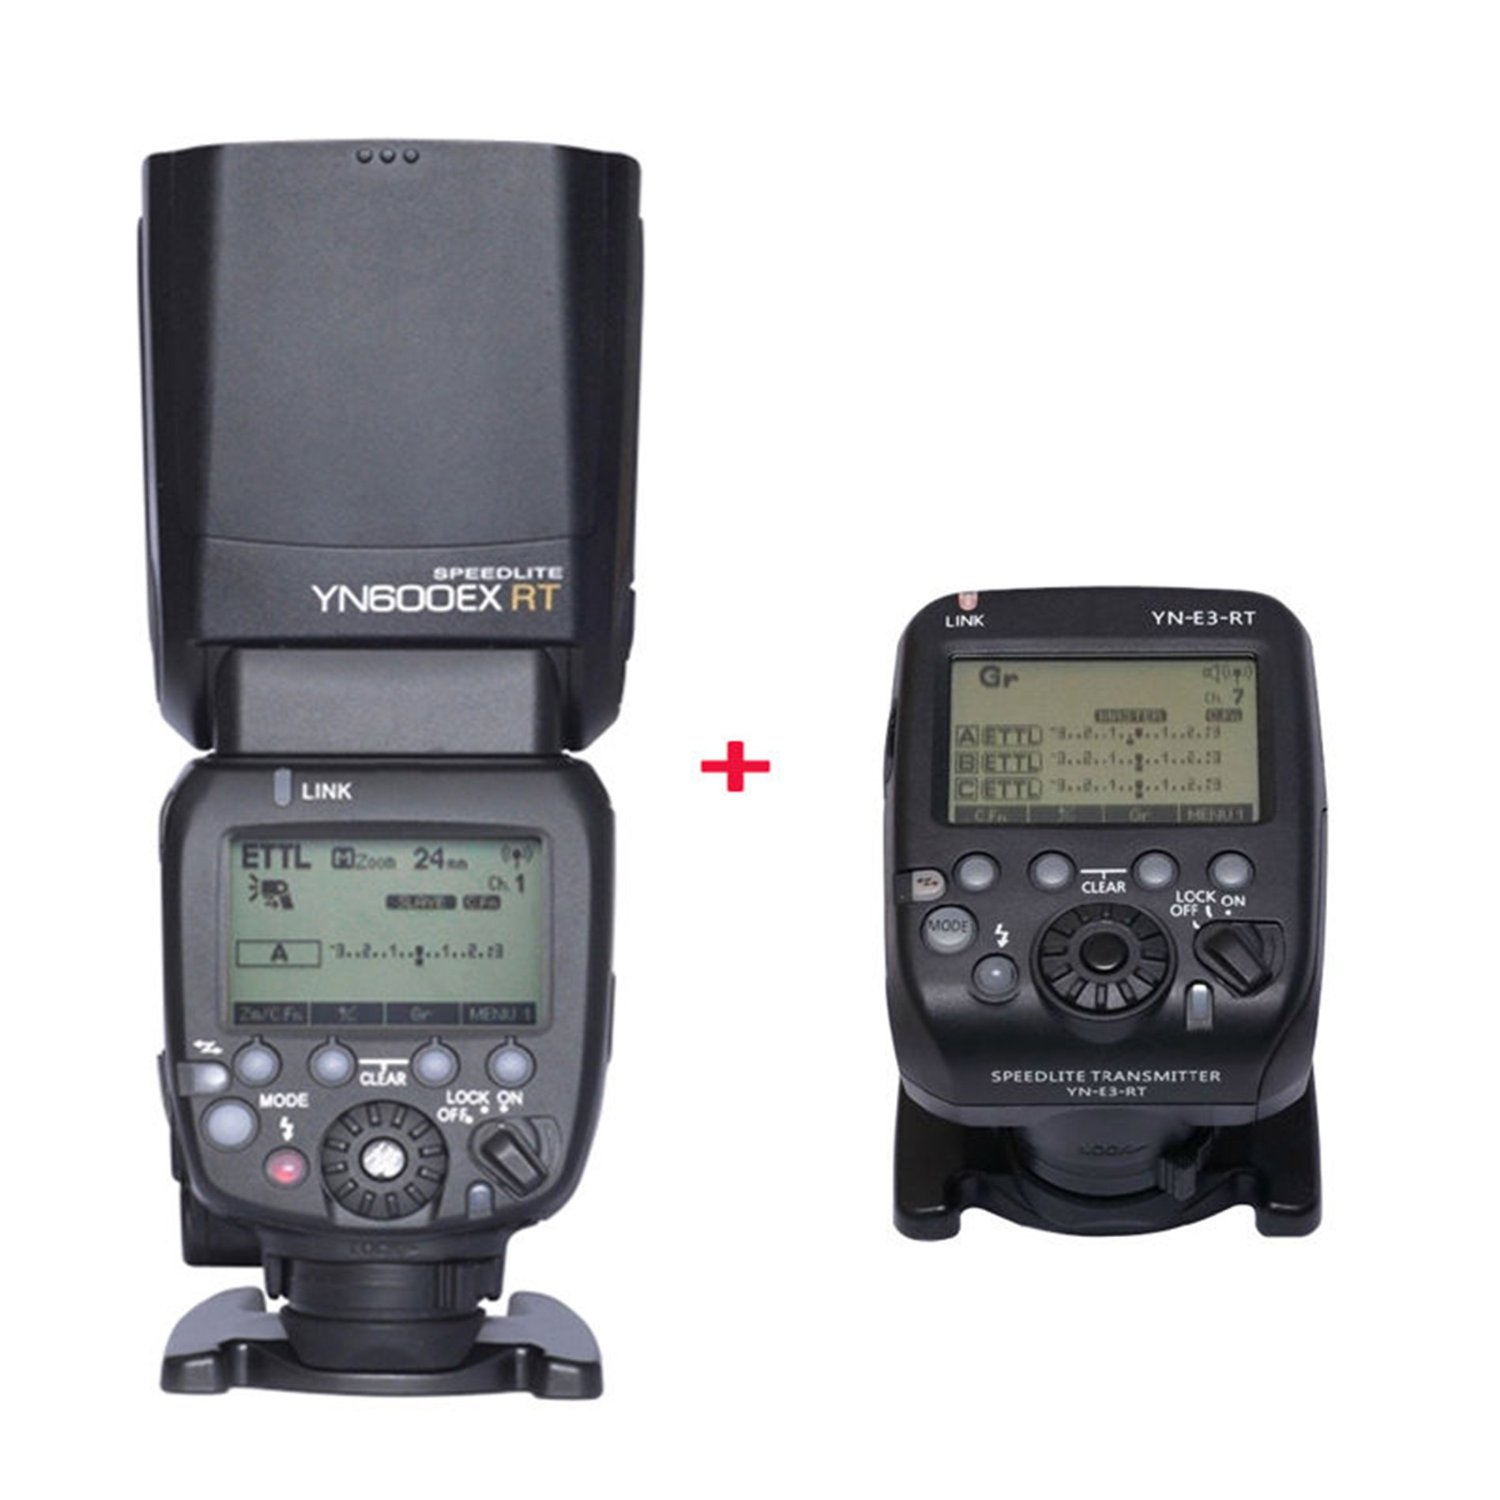 NEW YN600EX-RT Wireless ETTL Master Flash Speedlite + YN-E3-RT Speedlite Transmitter for Canon DSLR Camera